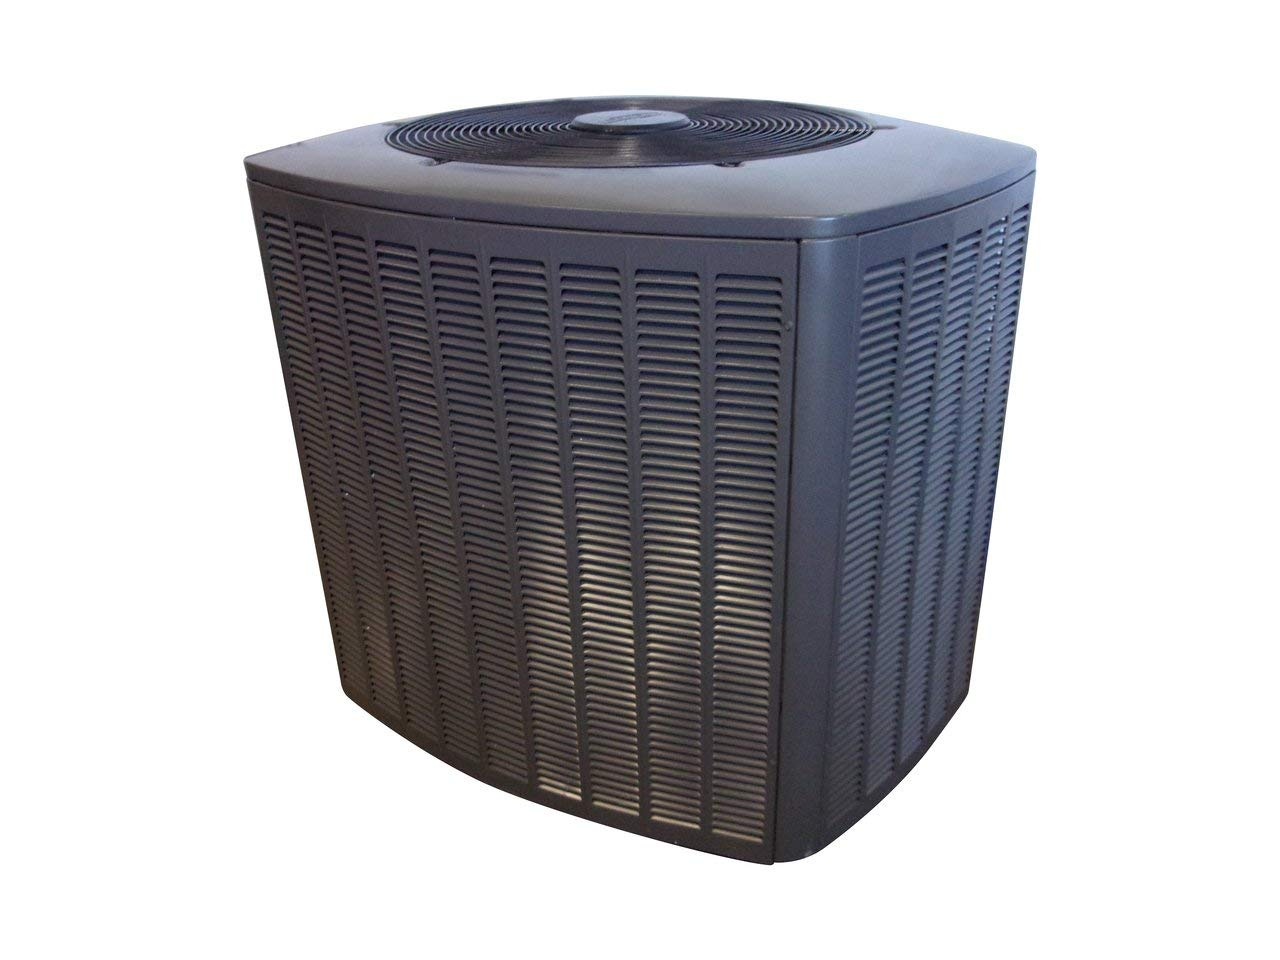 Lennox Used Central Air Conditioner Condenser XP14-042-230-02 ACC-10659